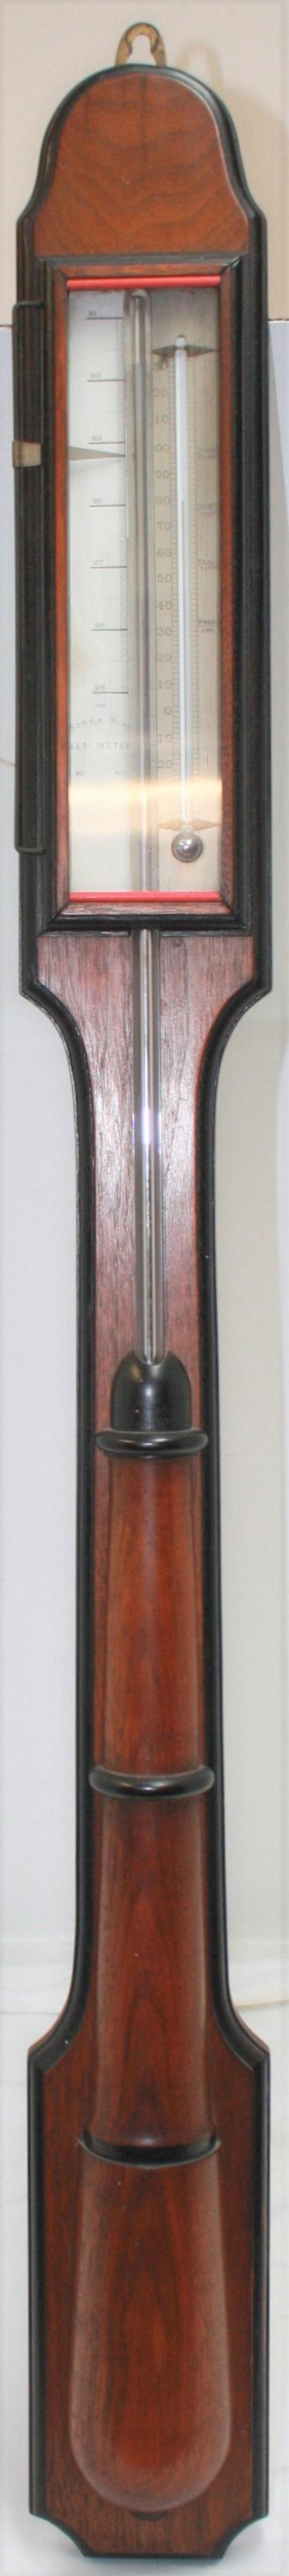 """19TH CENTURY STICK BAROMETER, """"THE STORM KING"""","""